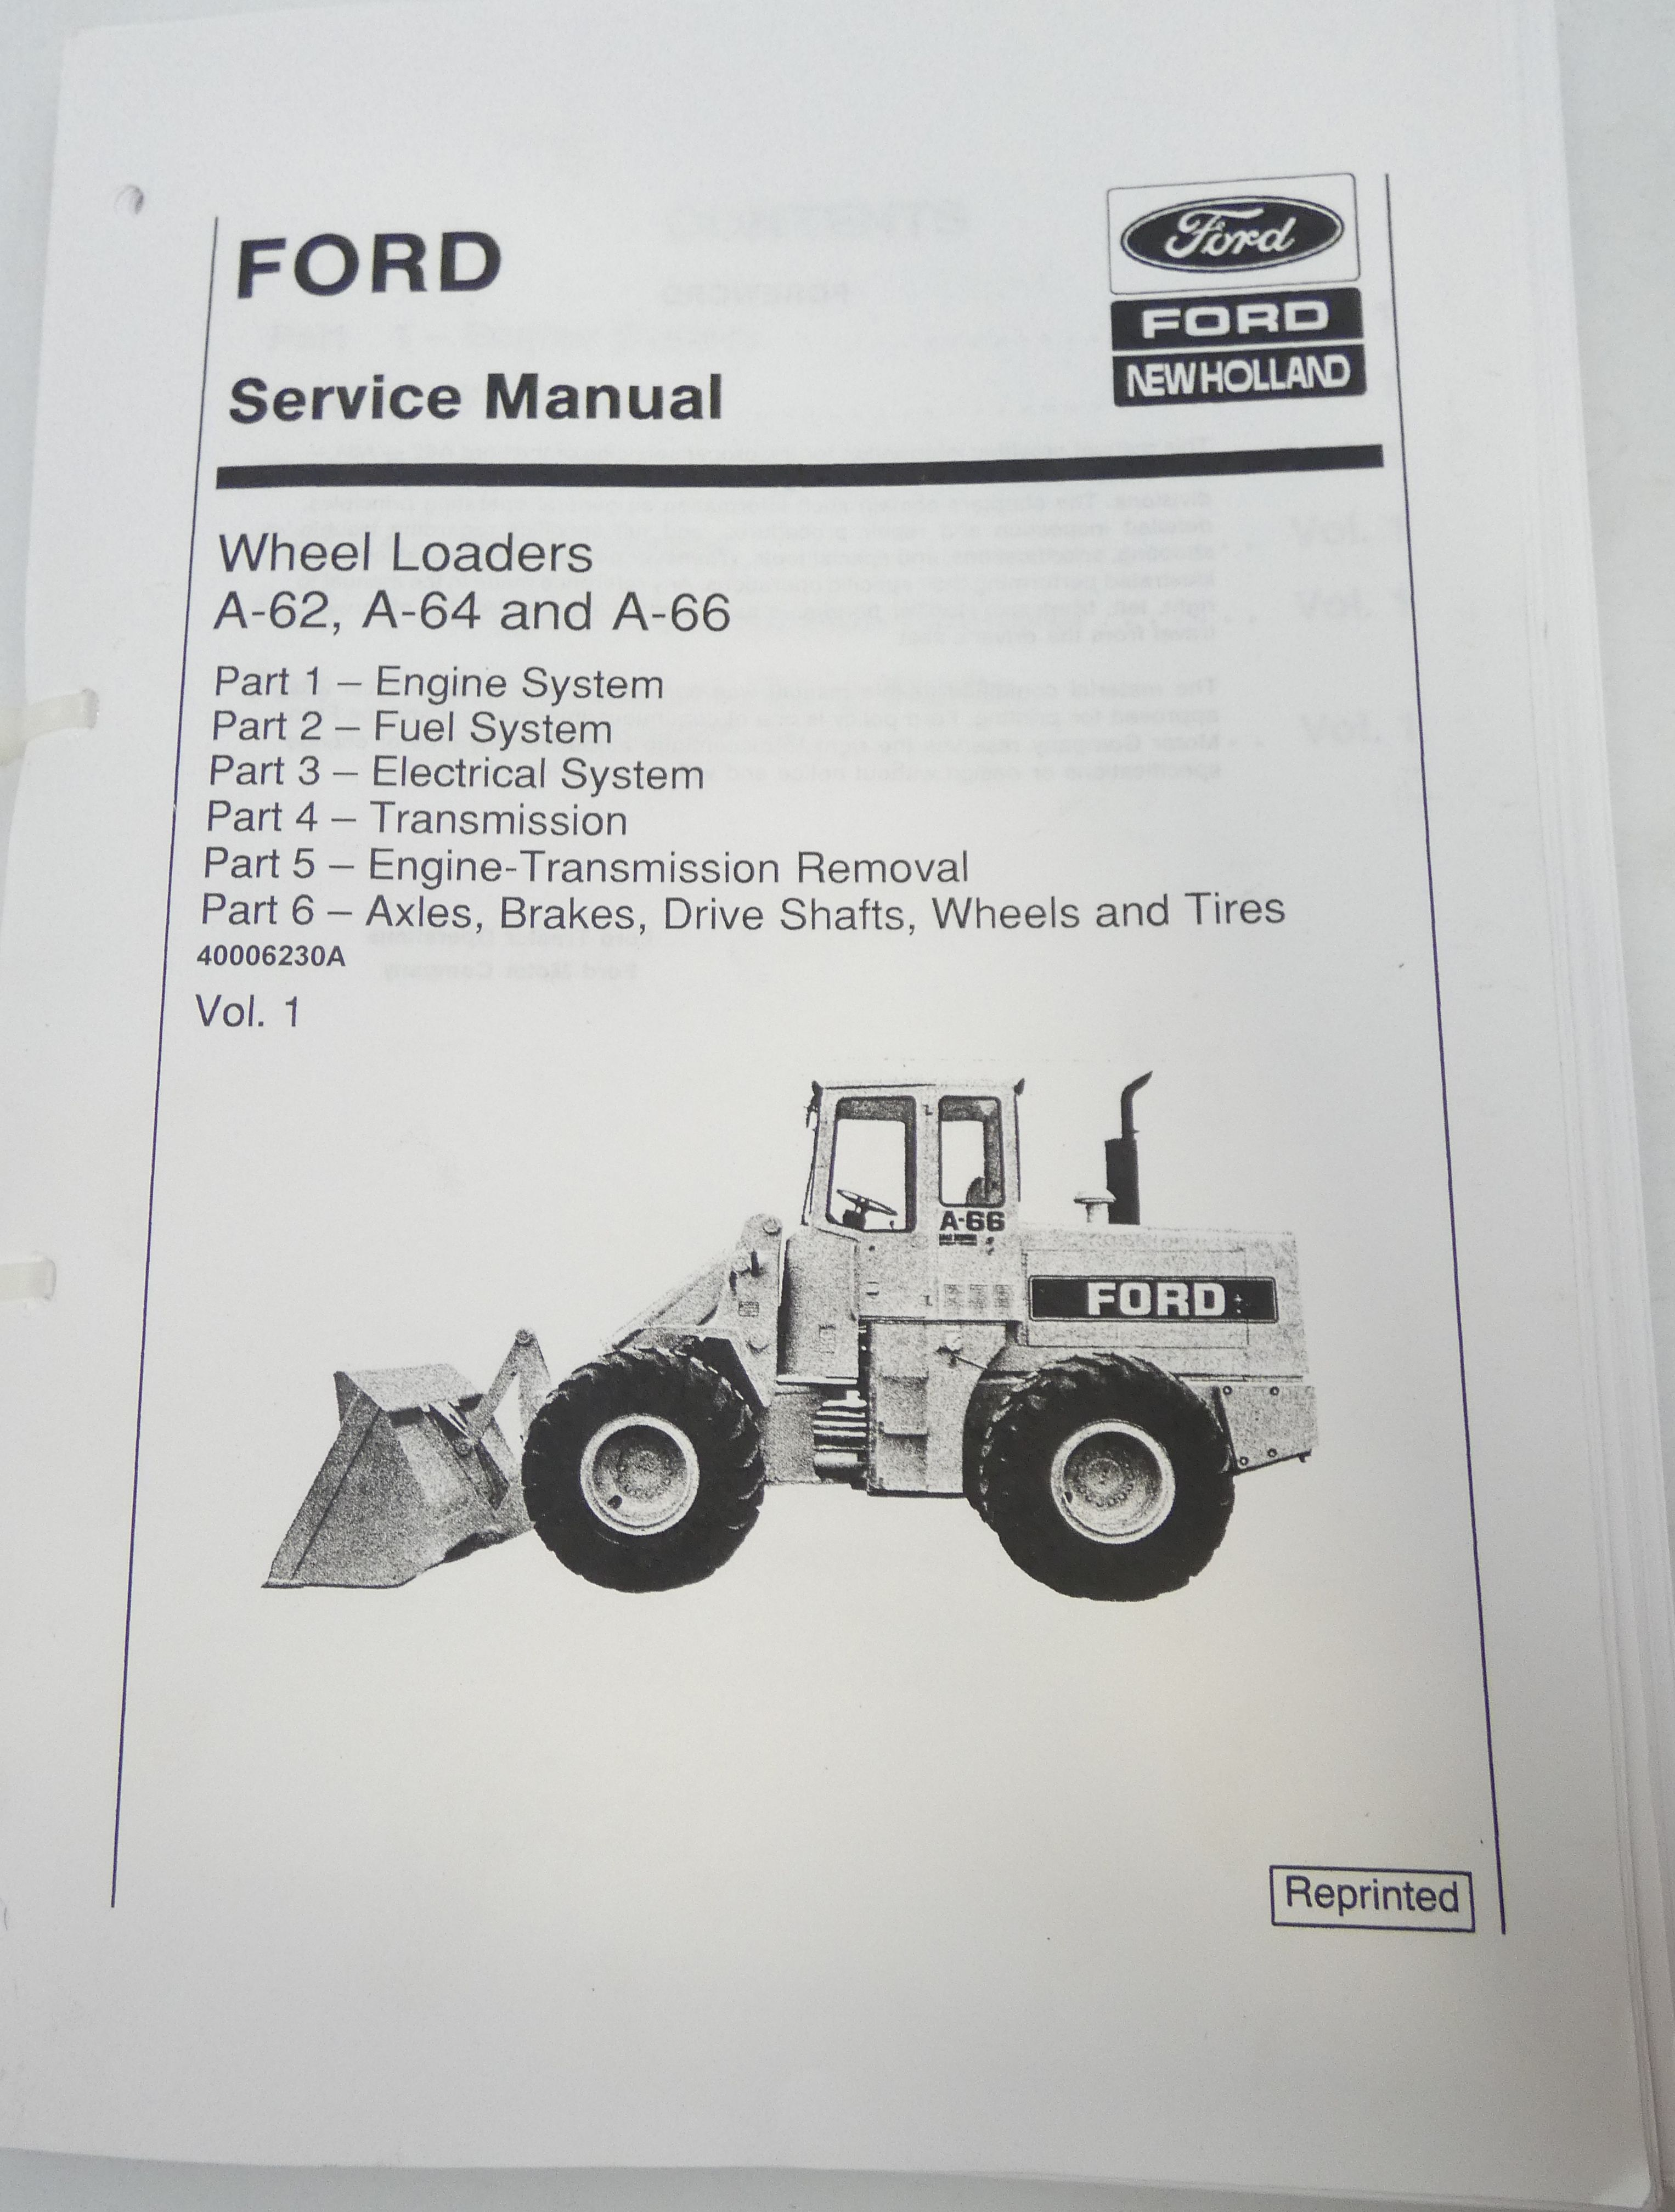 Ford A-62, A-64 and A-66 wheel loaders service manual